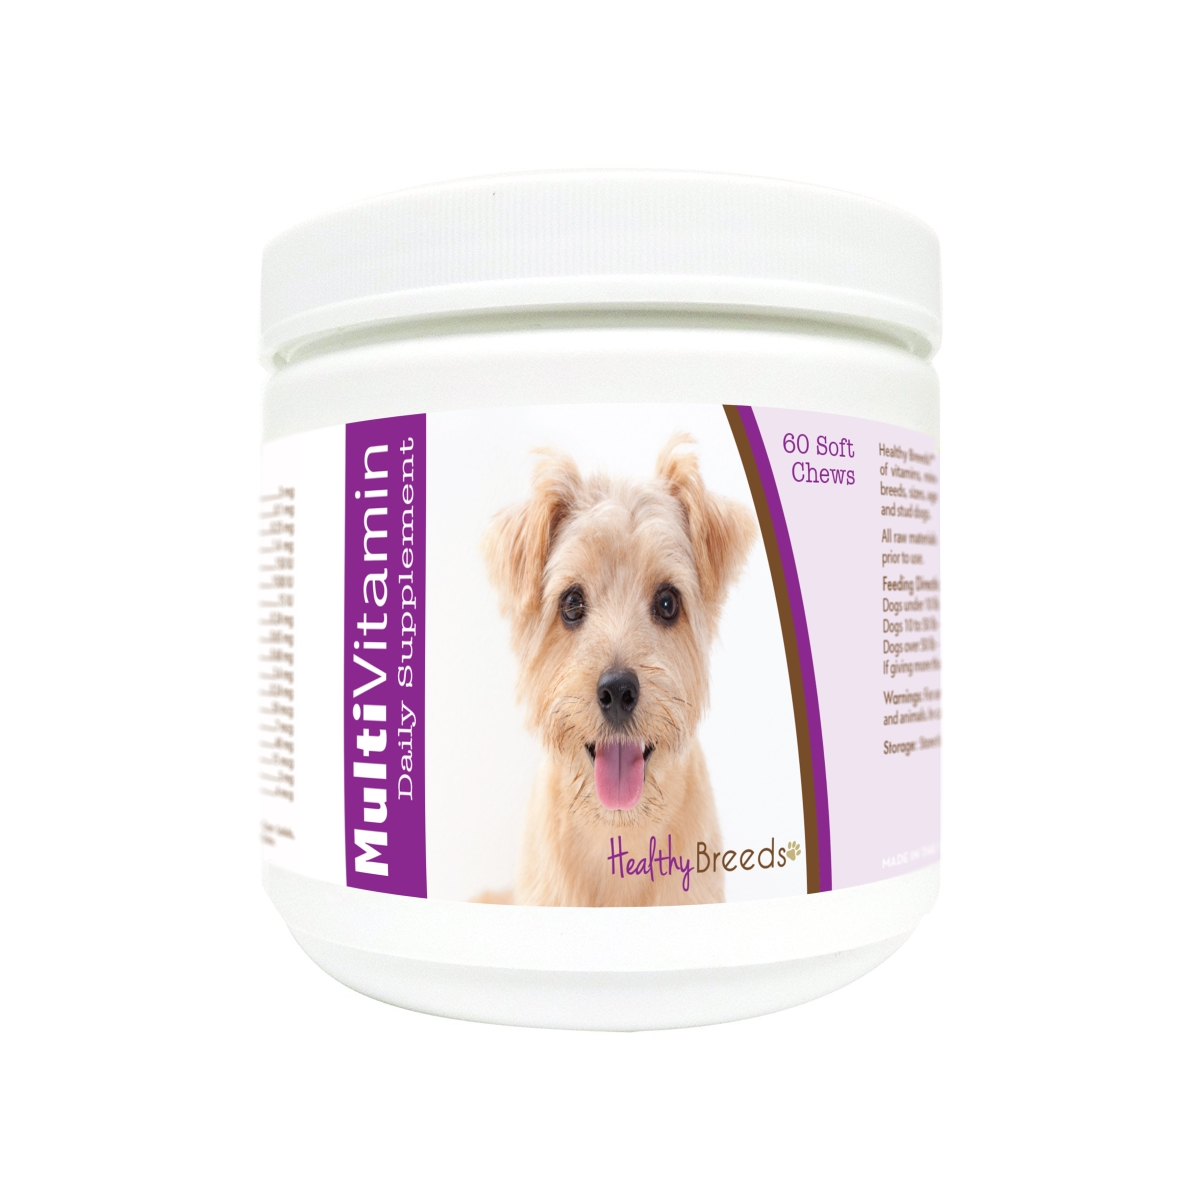 Healthy Breeds 840235174158 Norfolk Terrier Multi-Vitamin Soft Chews - 60 Count